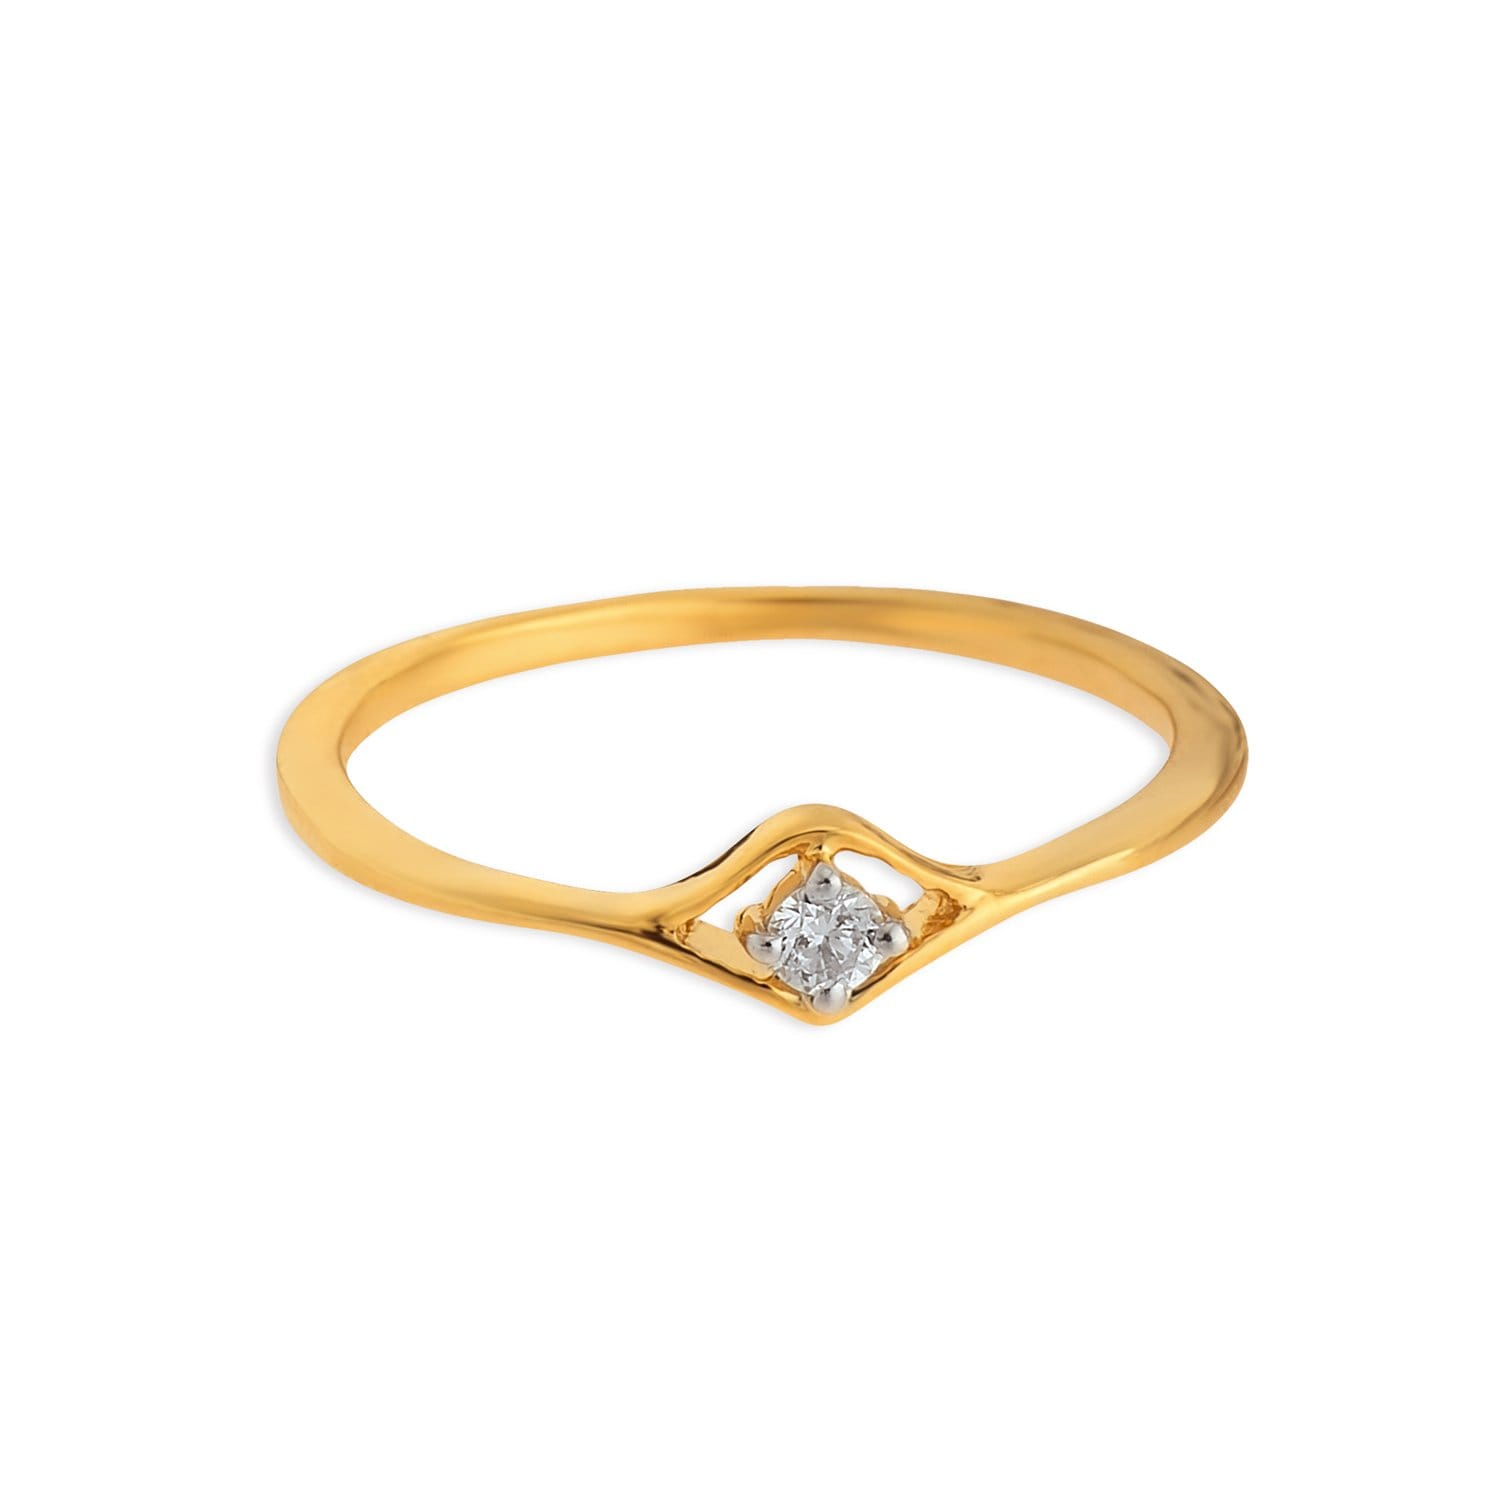 Buy 18K Yellow Gold Ring with Round Brilliant Cut Diamonds for ...